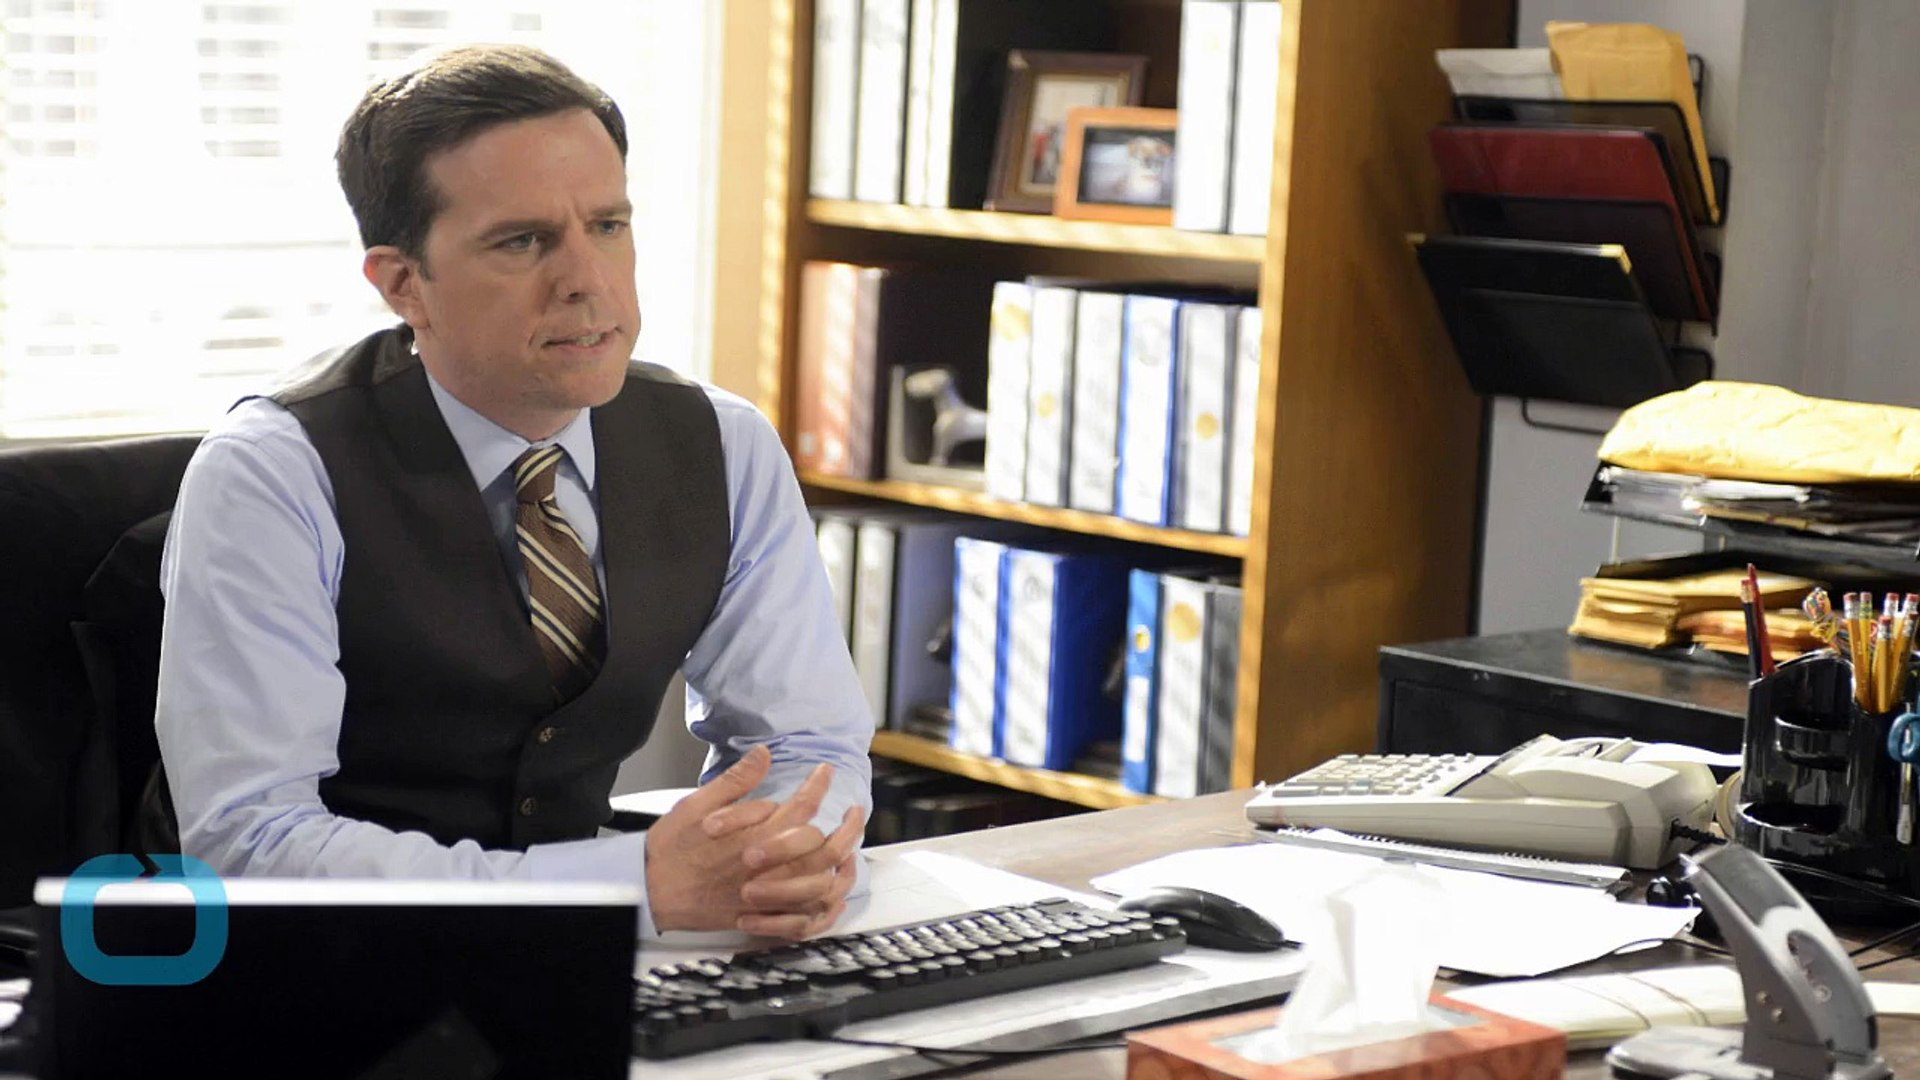 Ed Helms Stars in New 'Vacation' Red Band Trailer